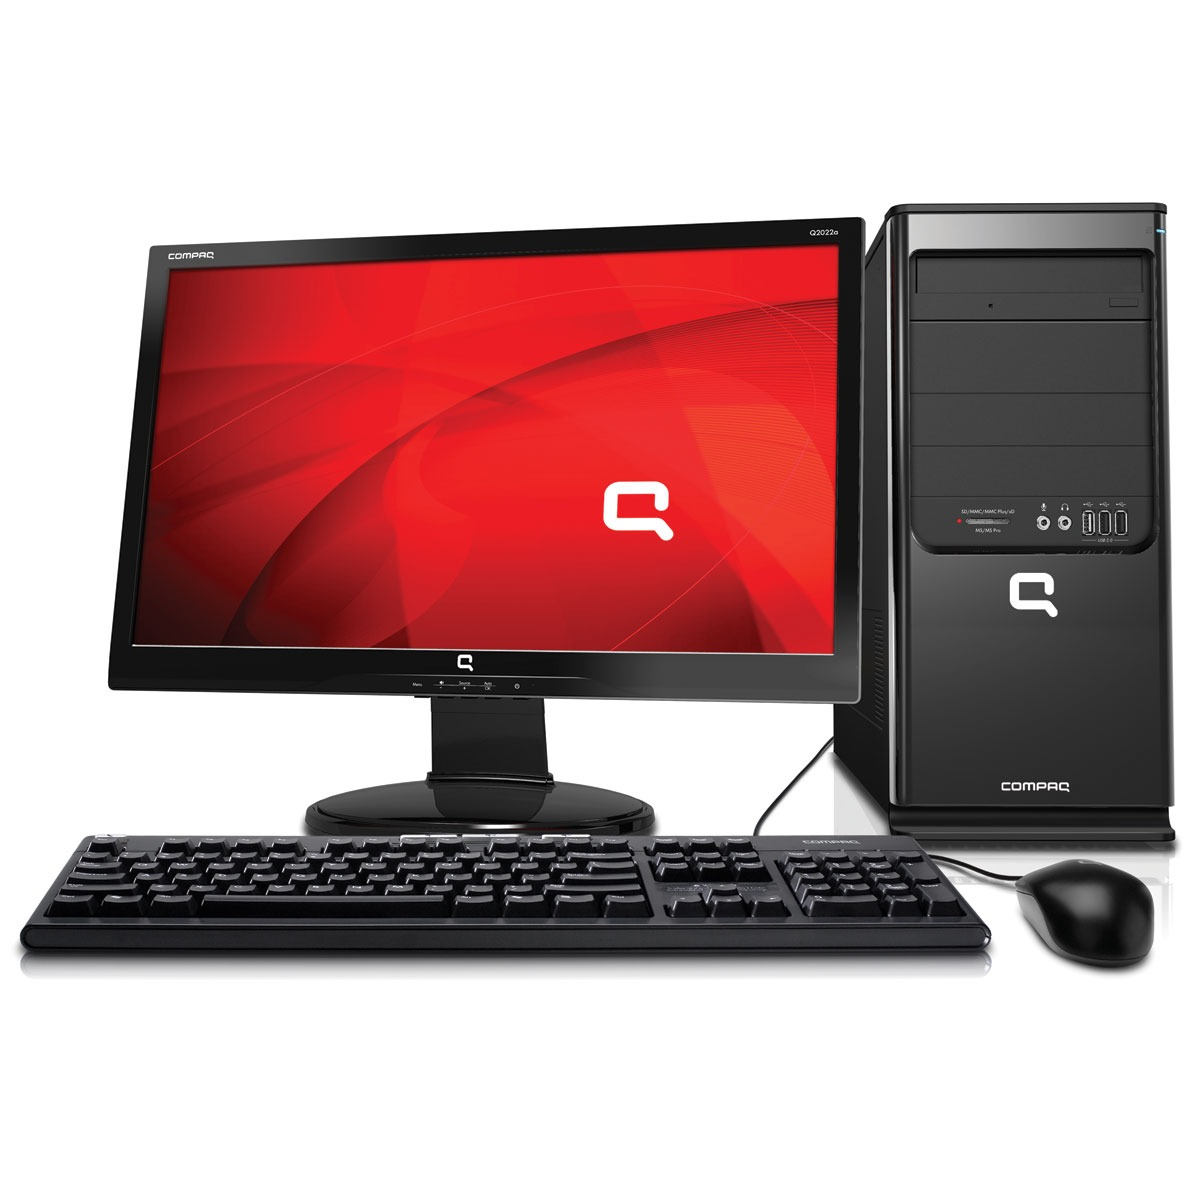 hp compaq sg3 215fr m pc de bureau hp sur. Black Bedroom Furniture Sets. Home Design Ideas